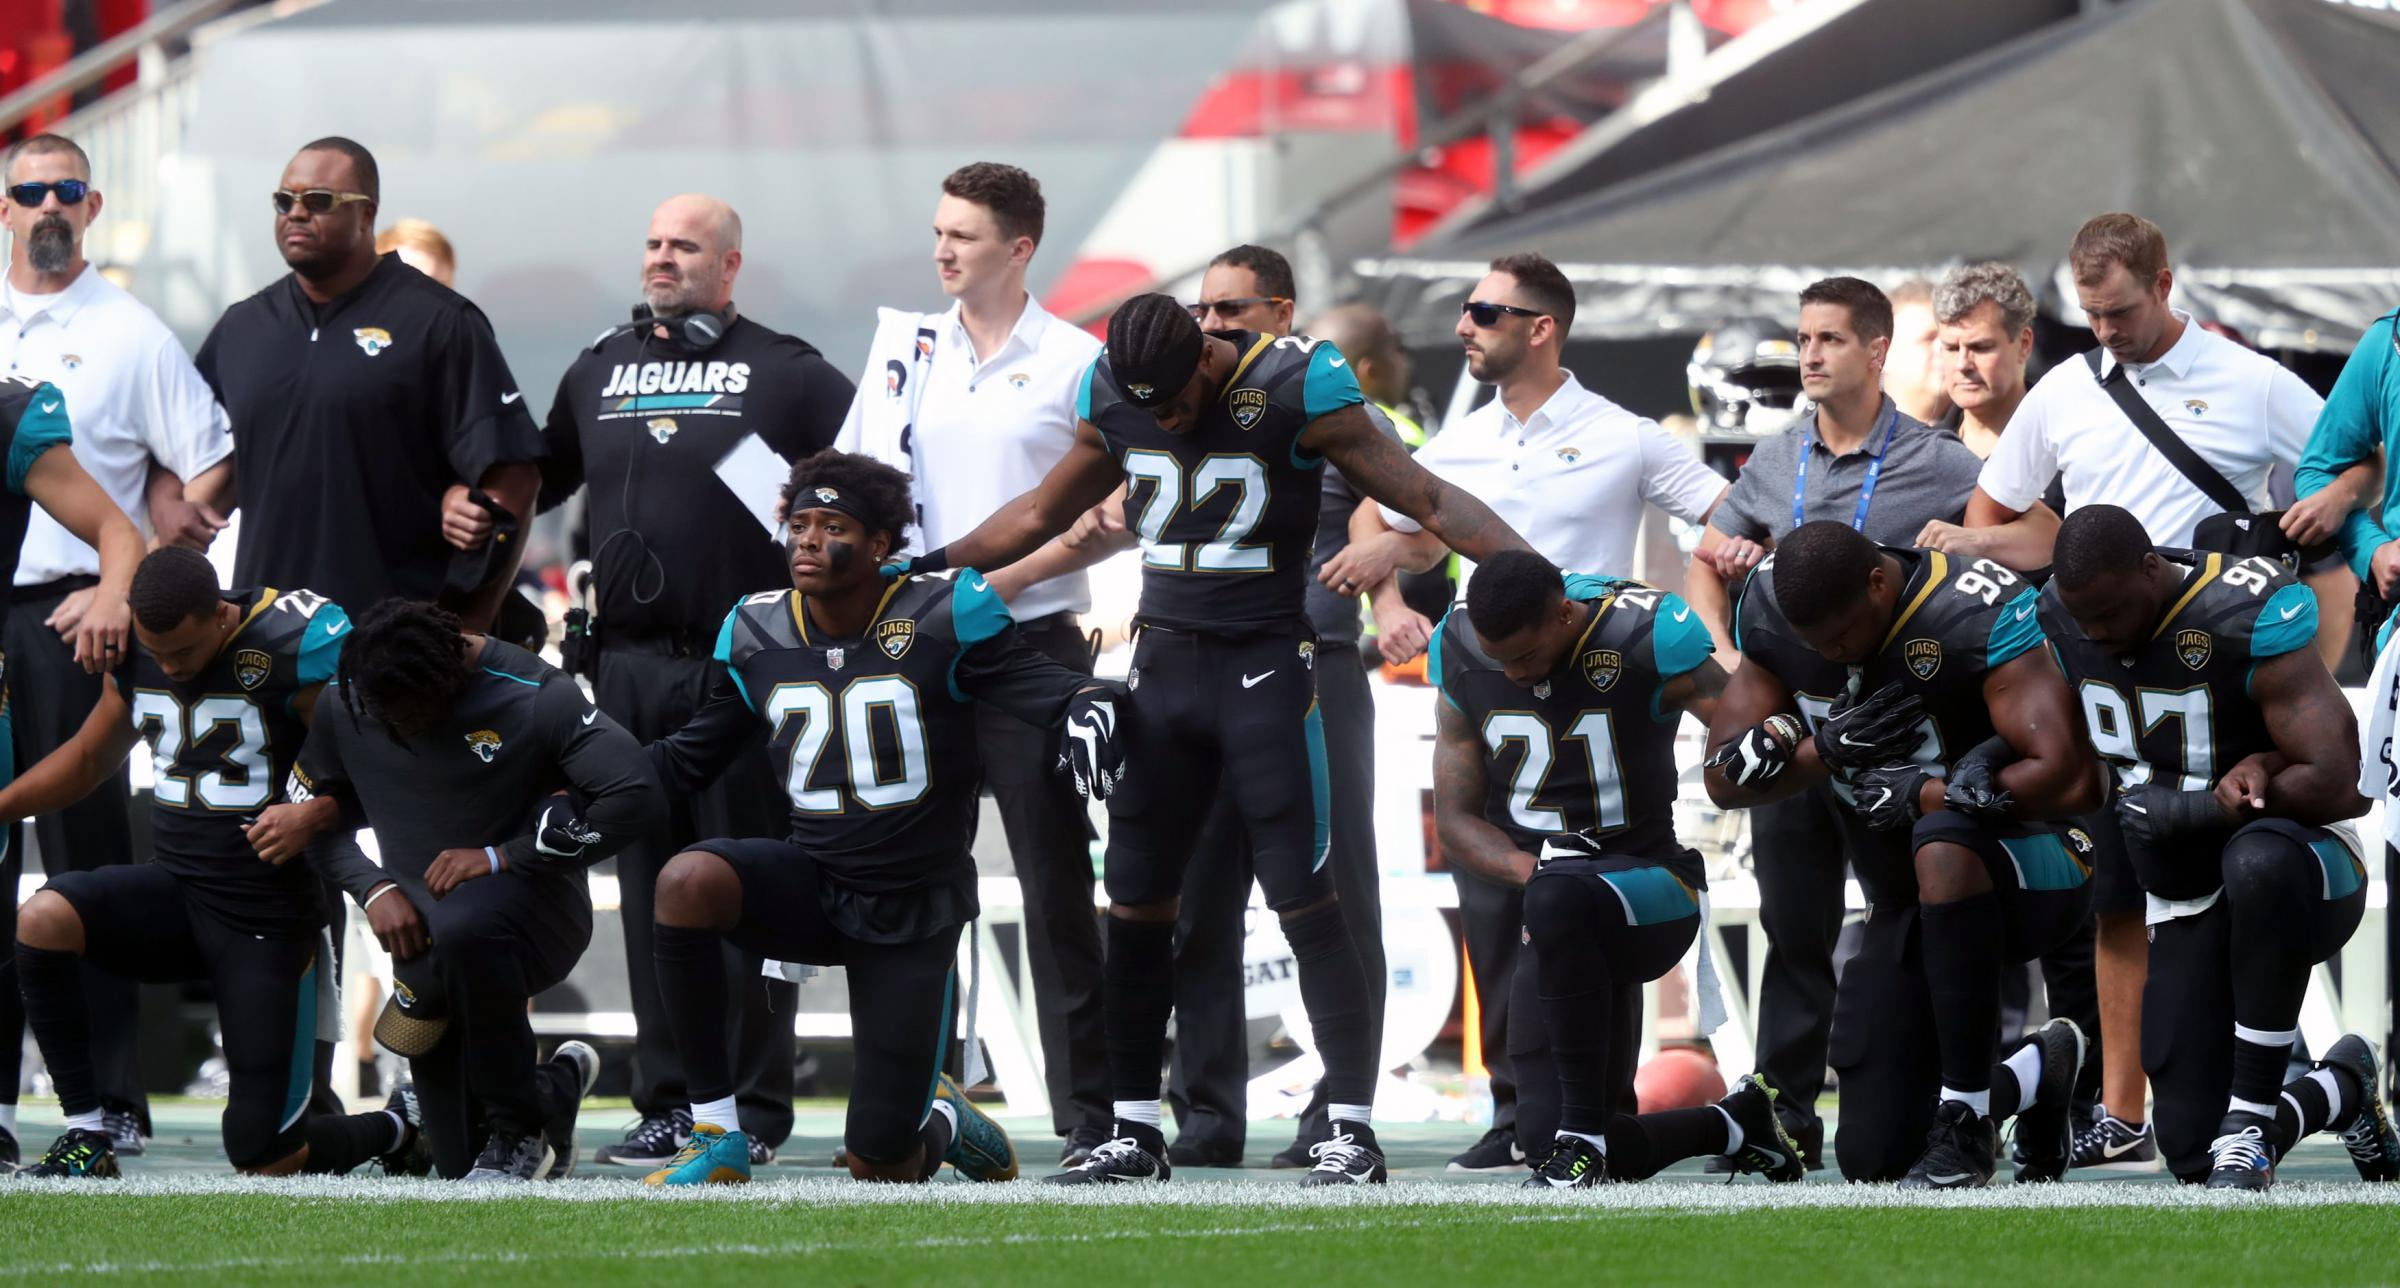 Players at an NFL match in London on Sunday took part in the protest. Photograph: PA